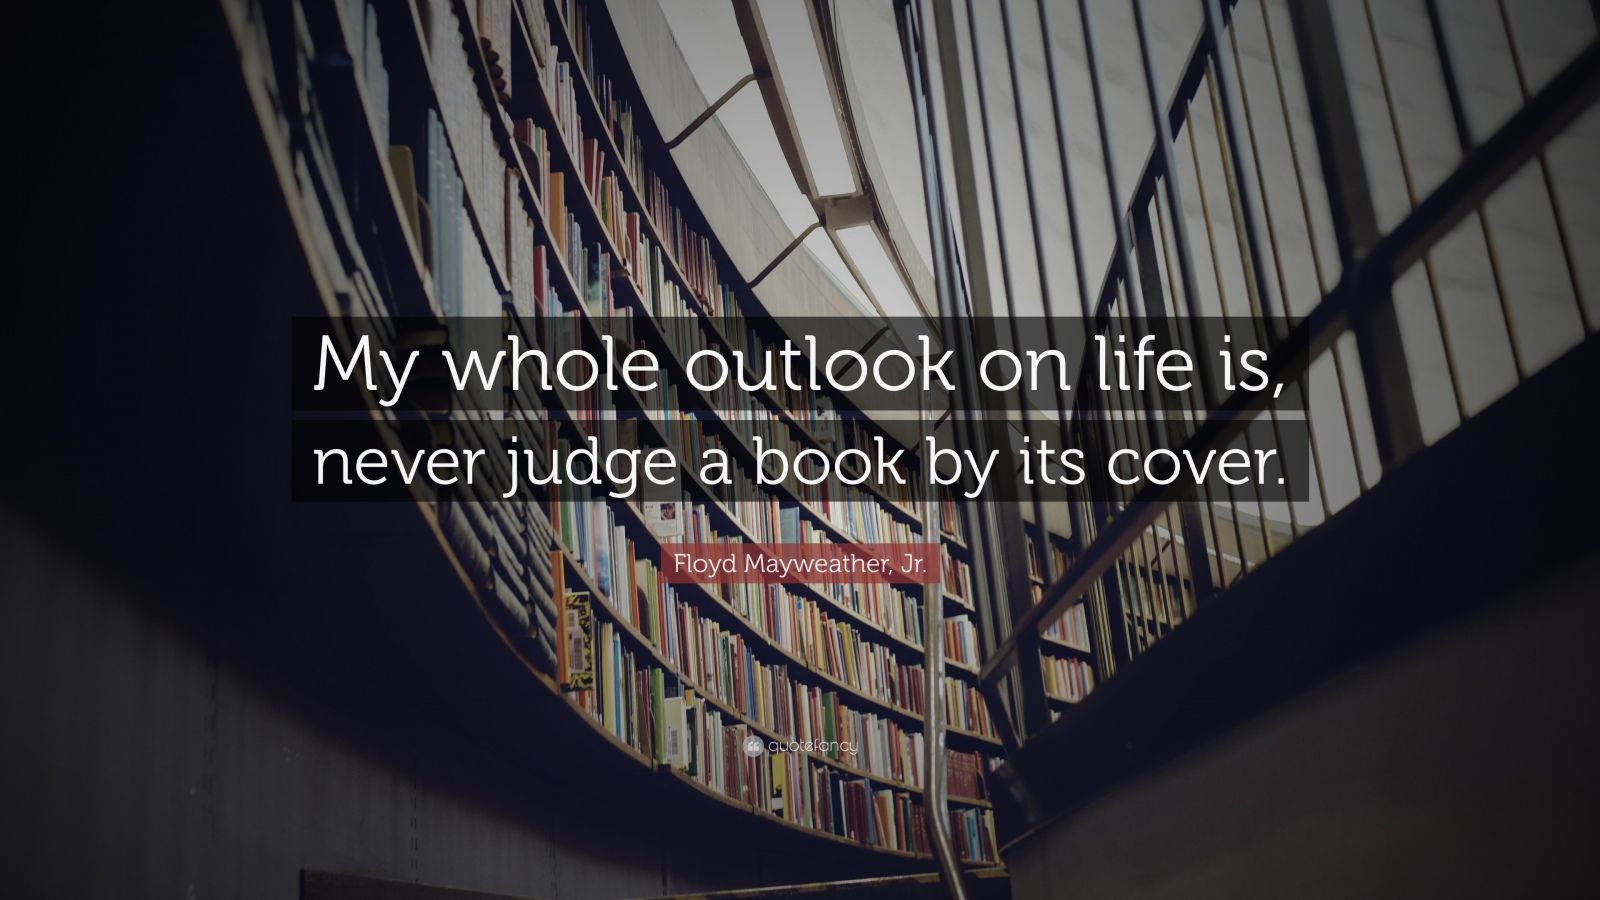 """Floyd Mayweather, Jr. Quote: """"My whole outlook on life is, never judge a book by its cover."""""""